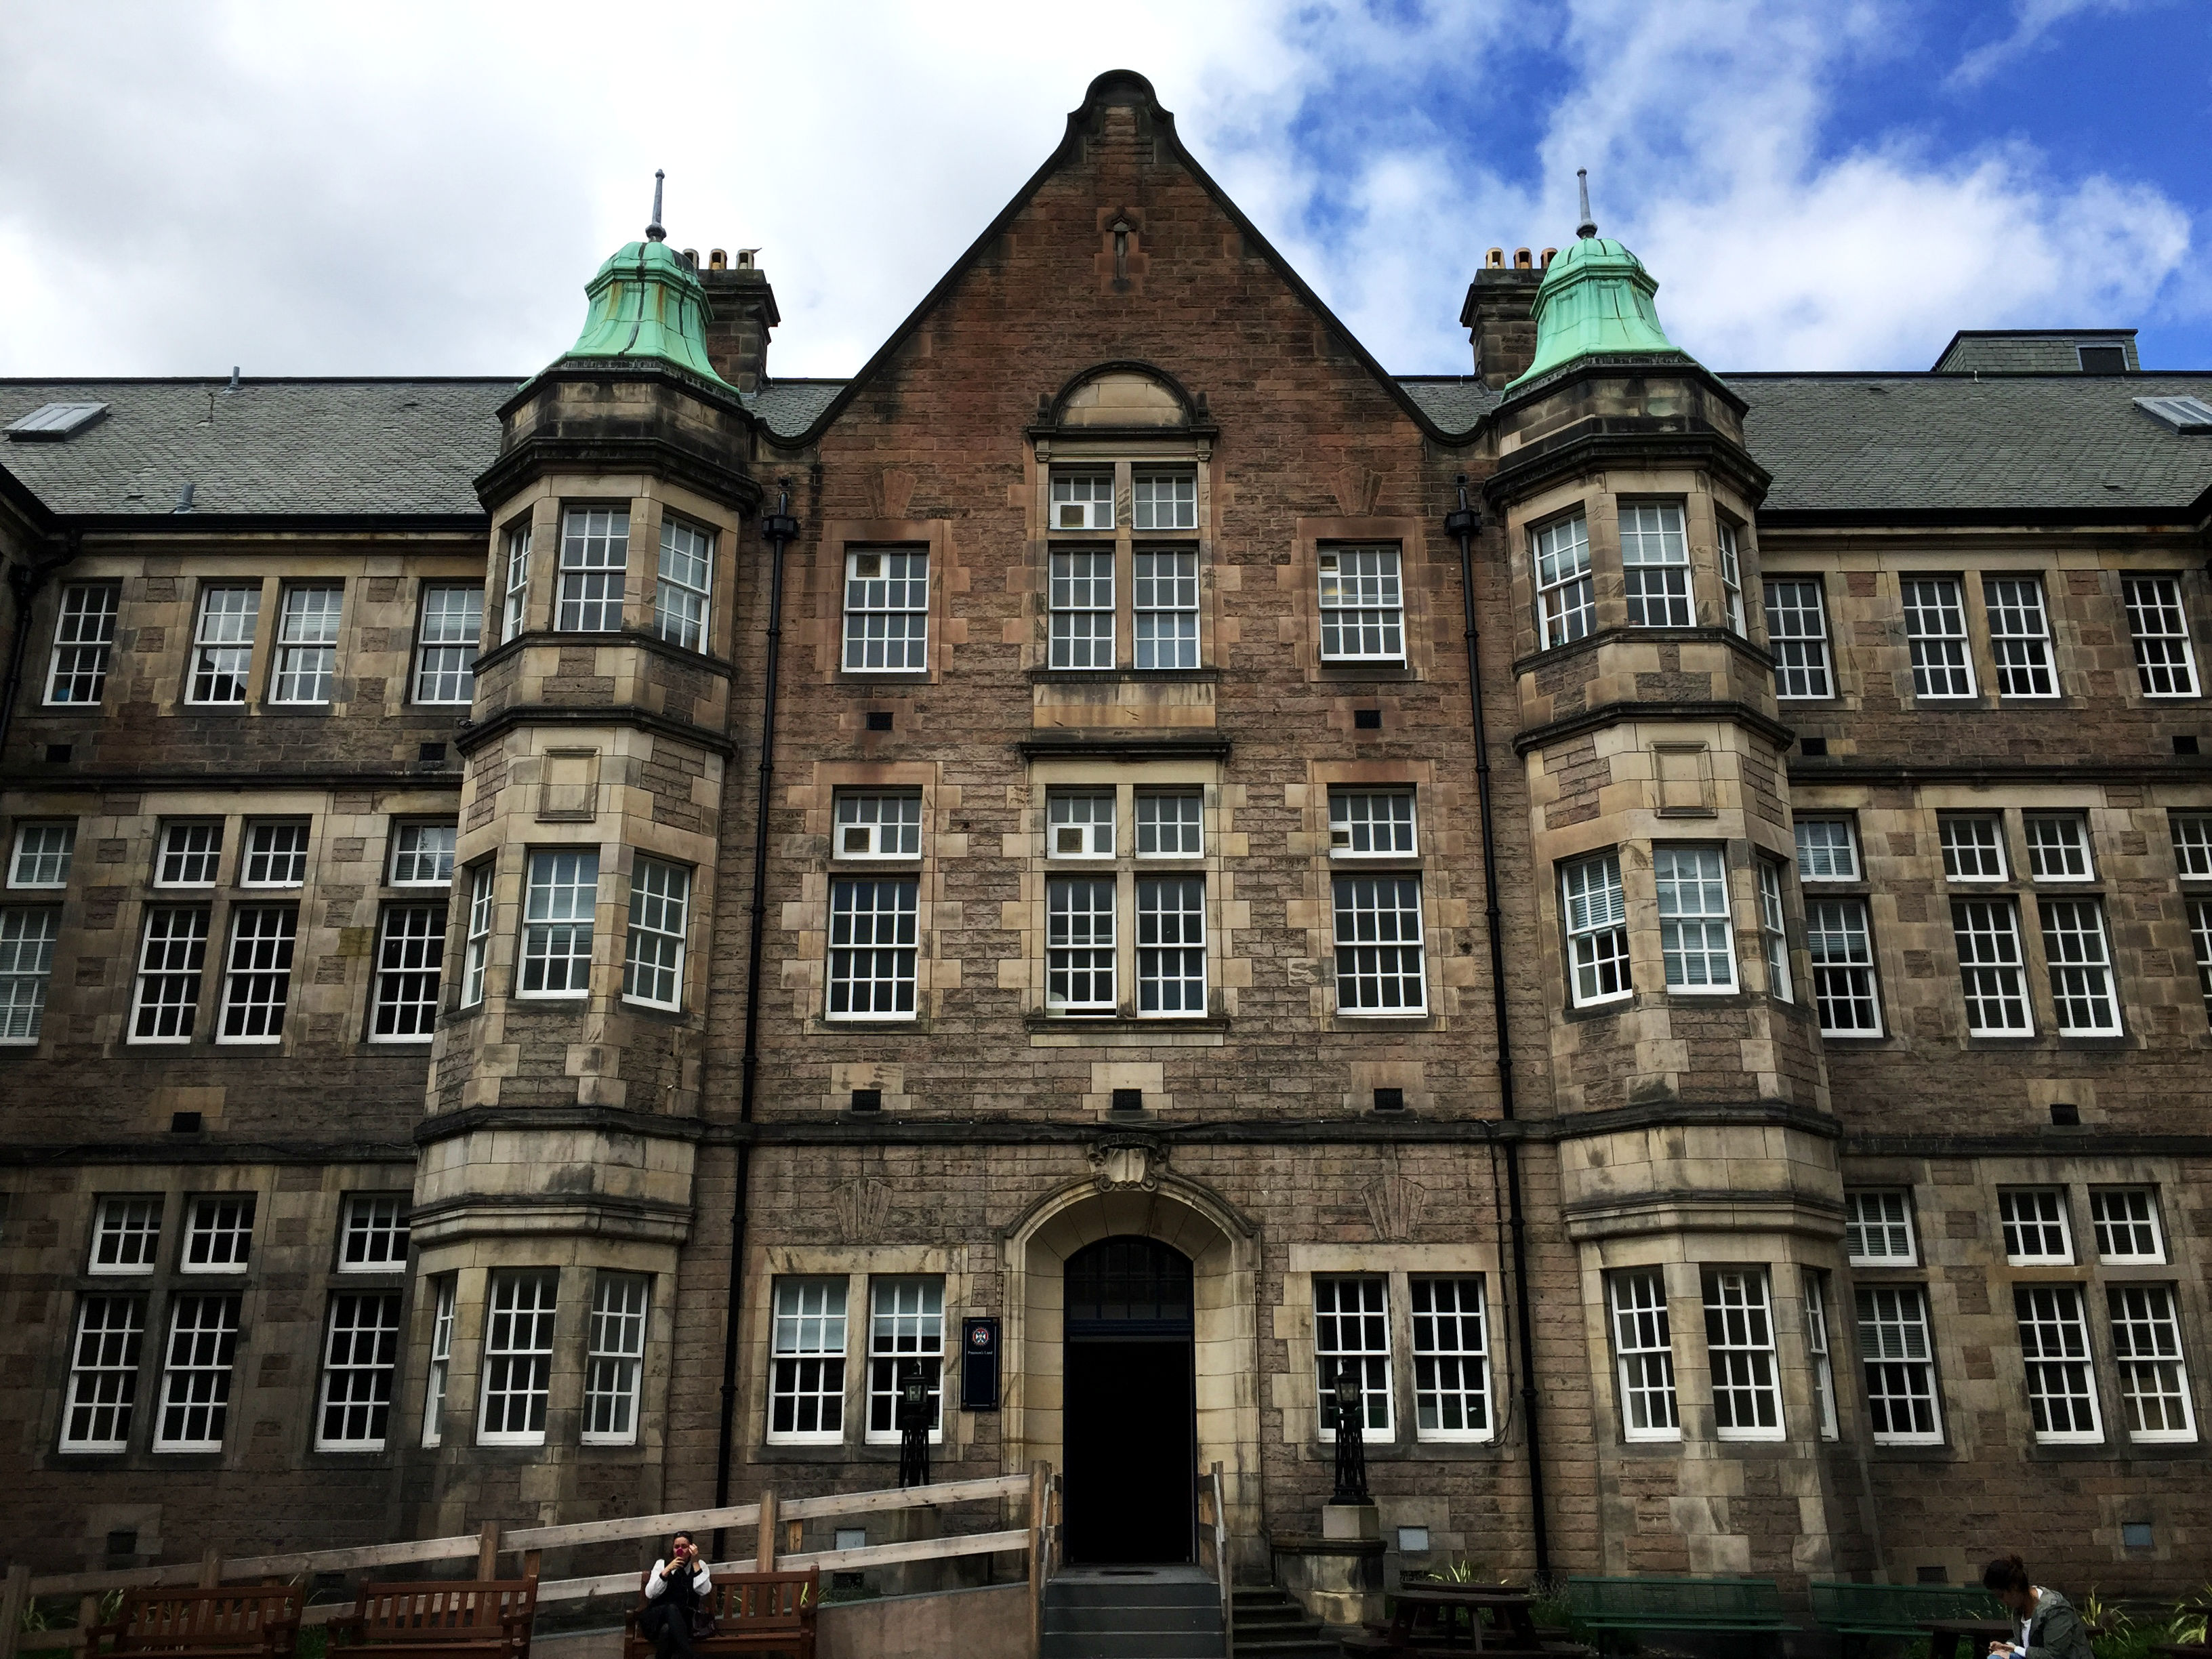 university of edinburgh archaeology dissertation Tel 01223 322466 email cambridgeproofreading@gmail  university of edinburgh)  satisfied with the quick and detailed services provided by dr derek birch.